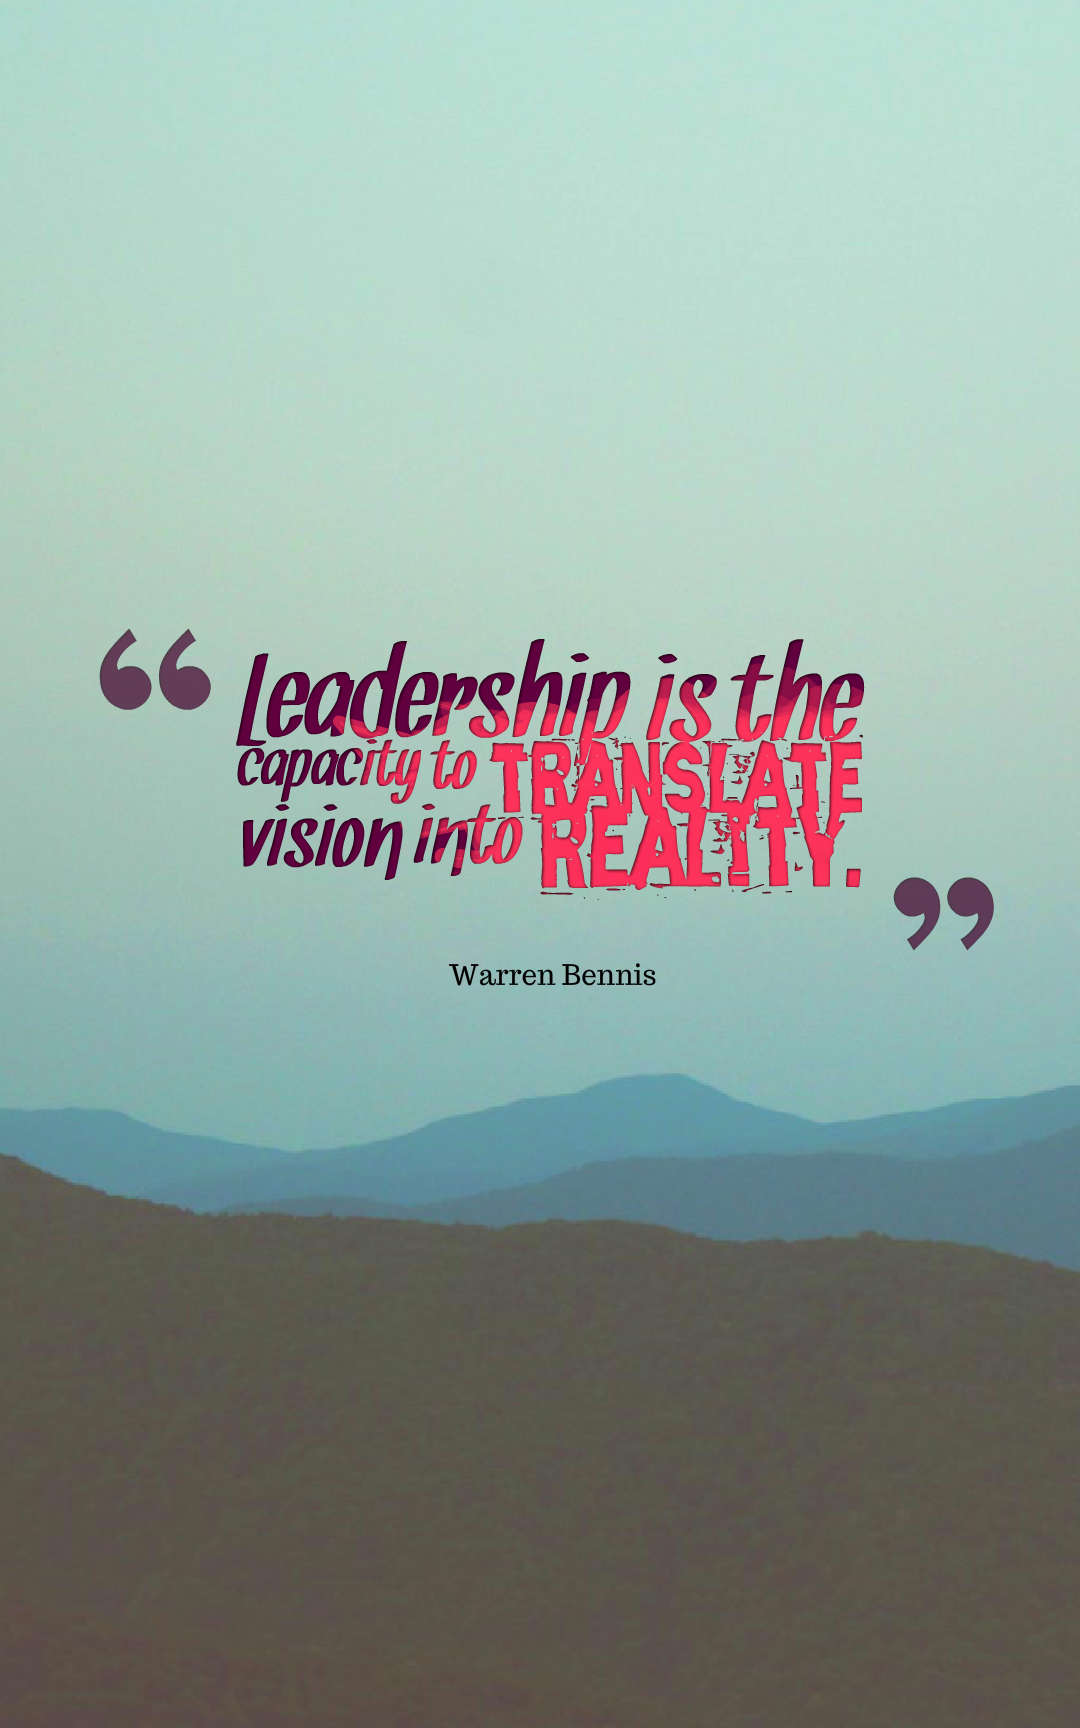 Quotes image of Leadership is the capacity to translate vision into reality.